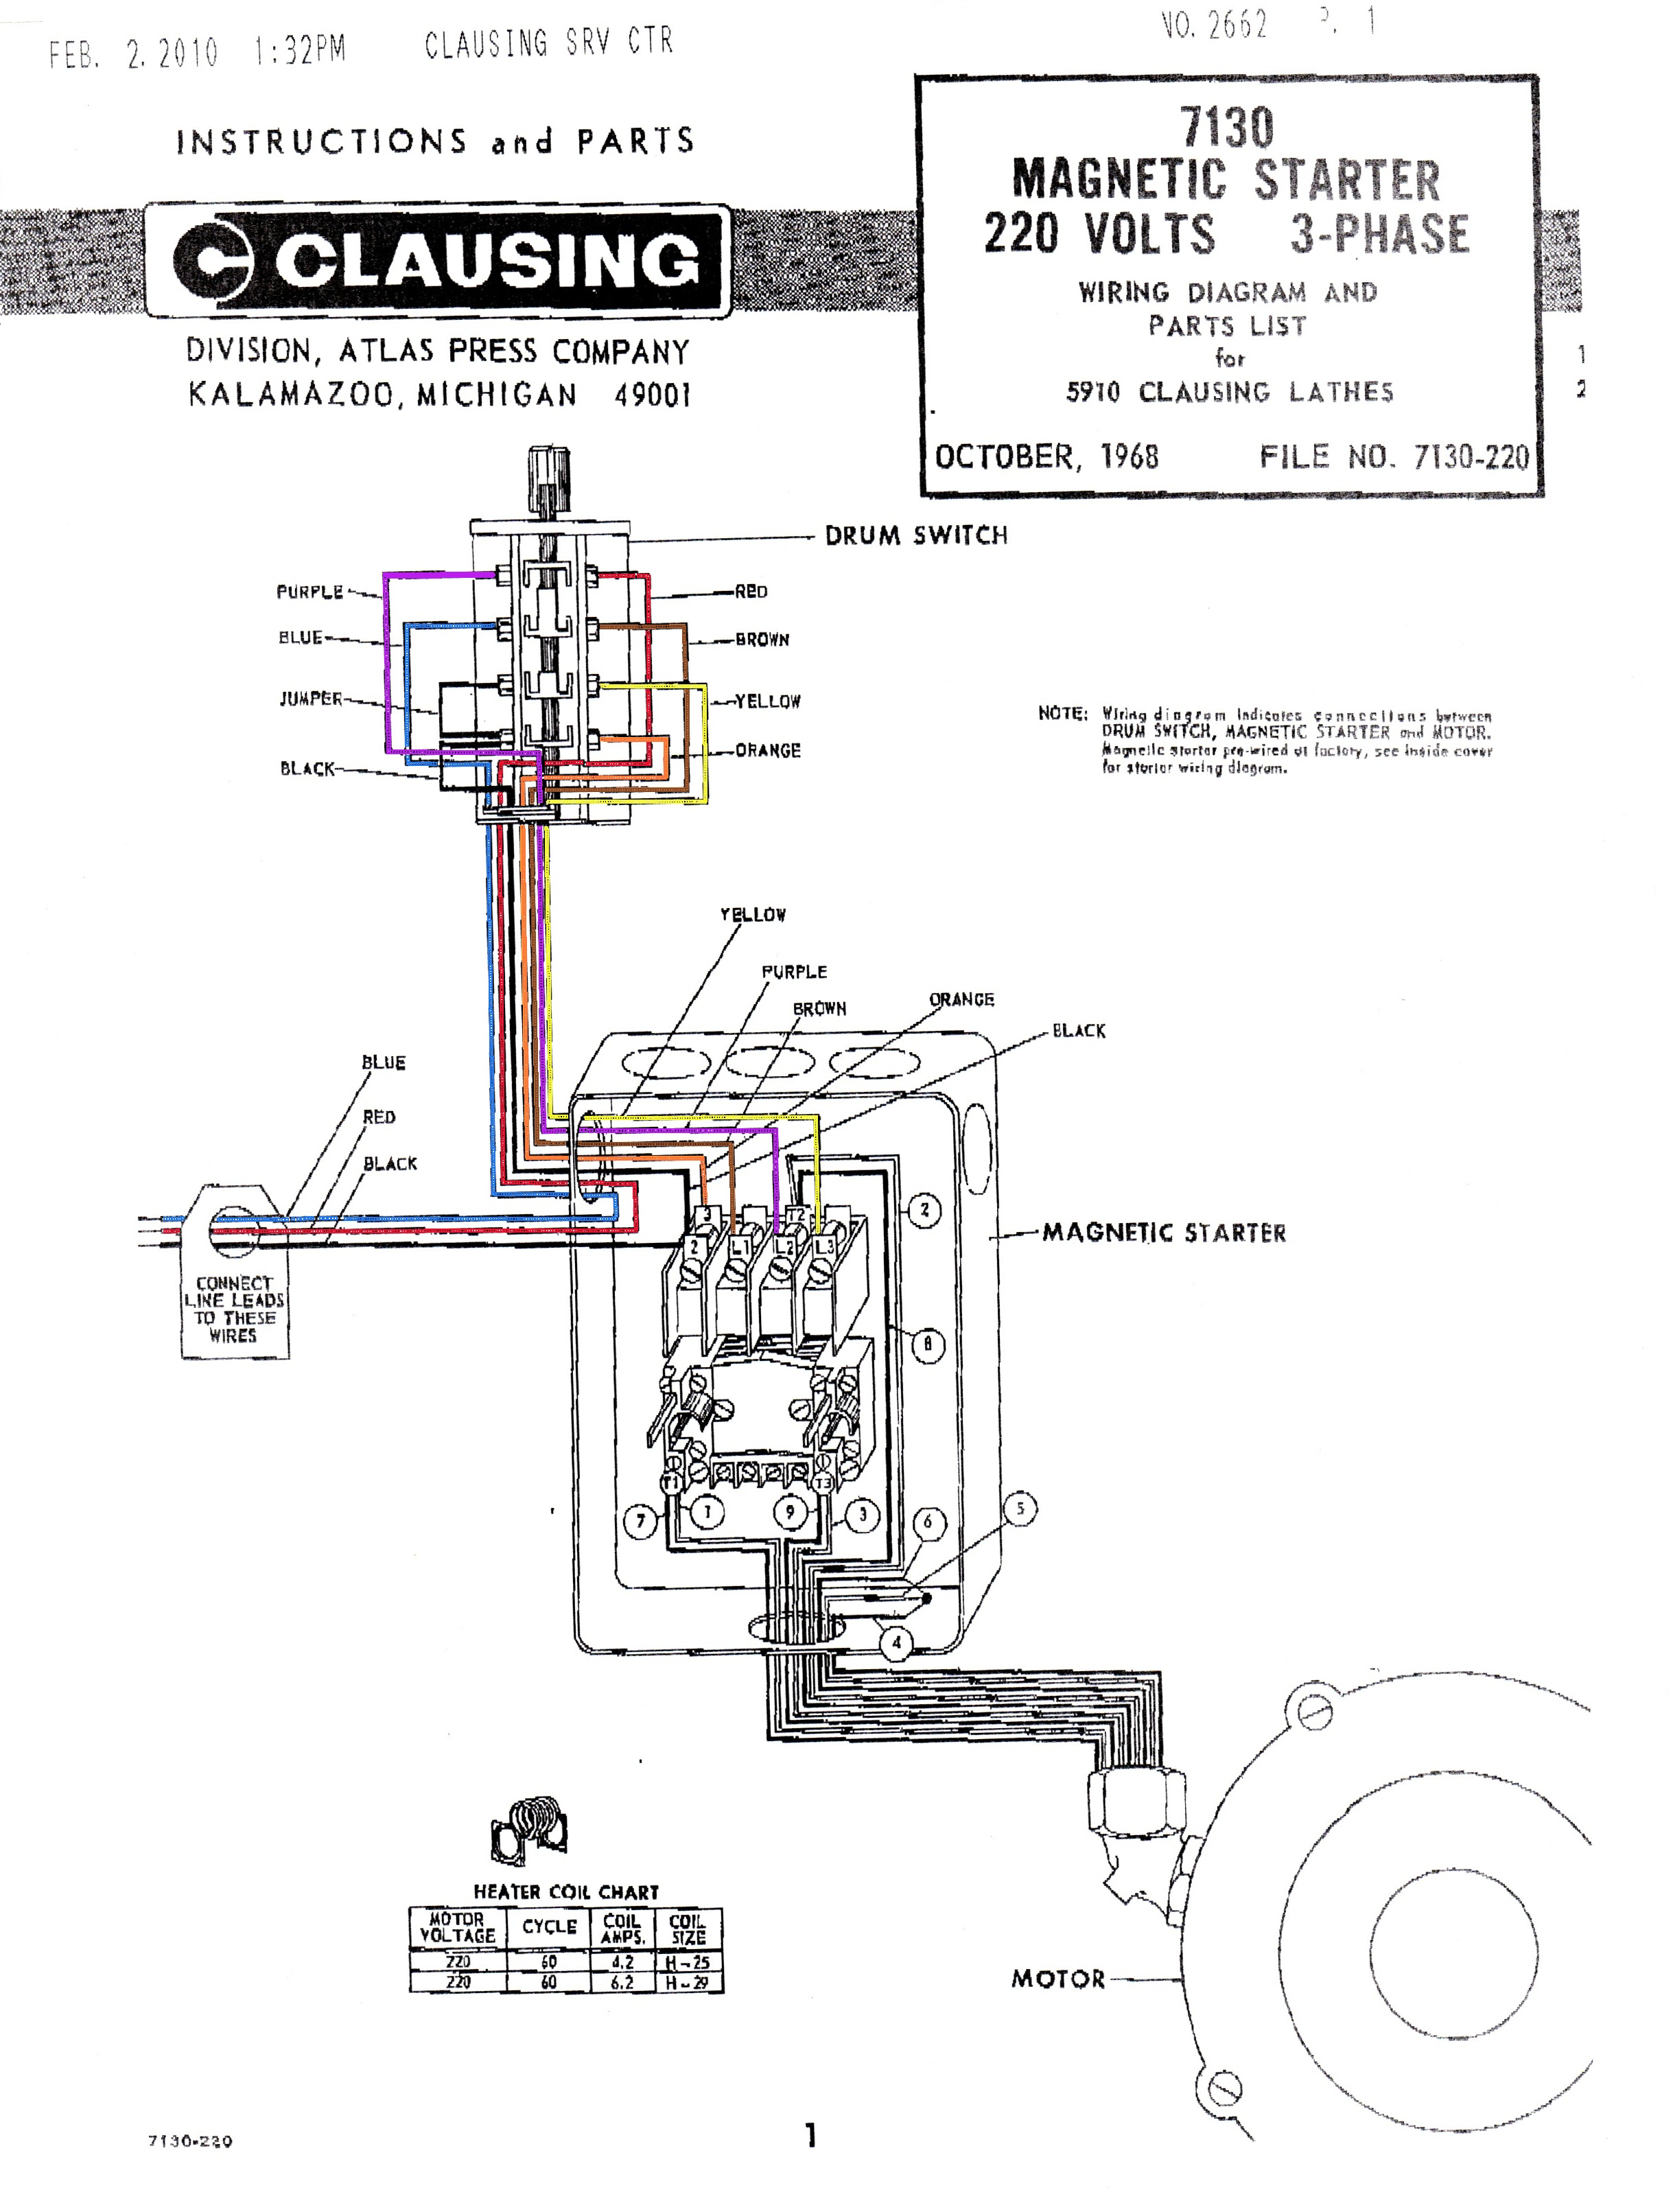 12 Pole Lighting Contactor Schematic Block Wiring Diagram 3 Phase Motor Starter Relay Allen Bradley 6